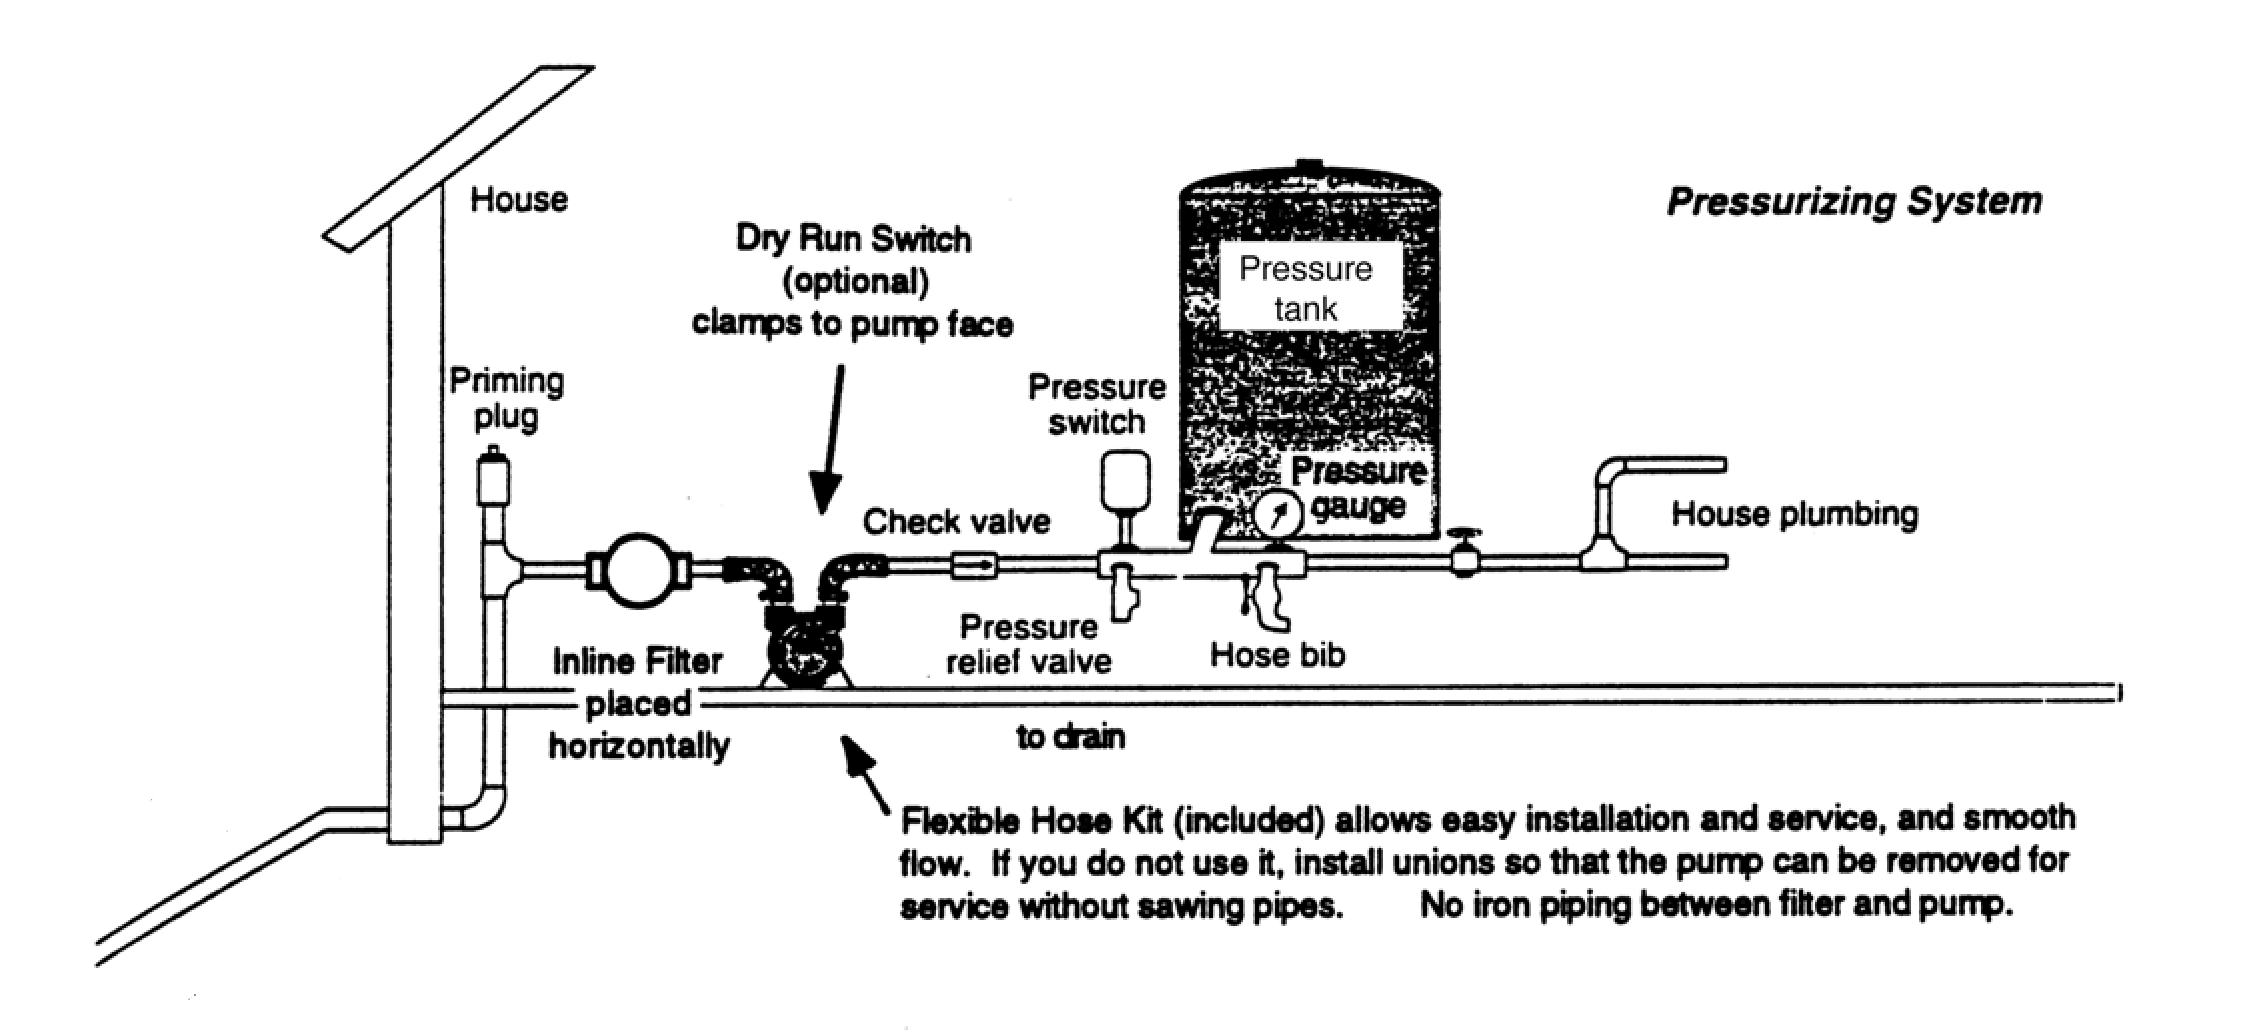 Pressure Tank Installation Diagram Also Booster Pump Piping Diagram on